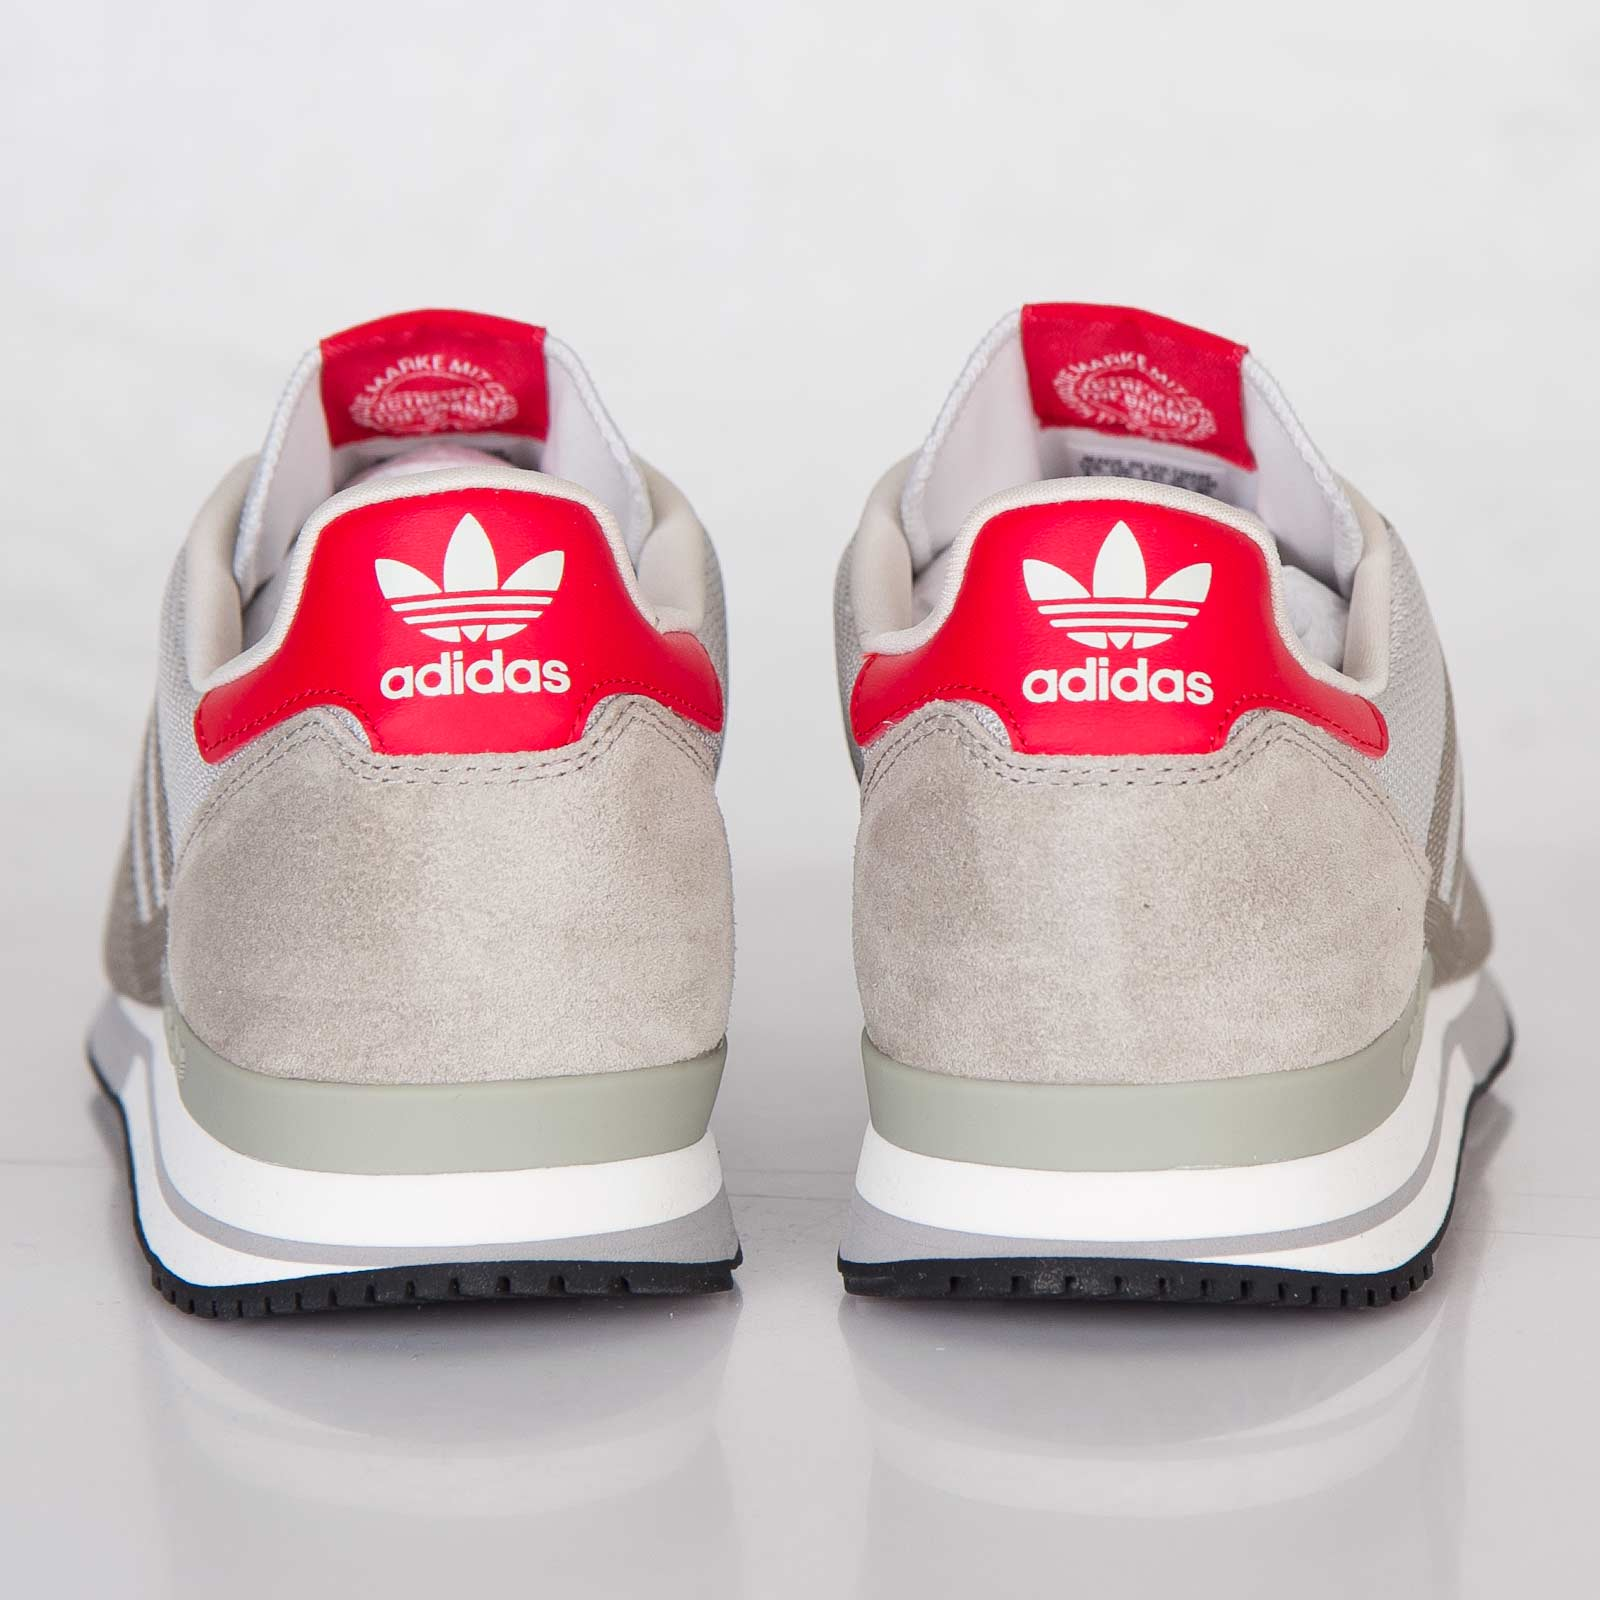 38abe015cecb3 adidas ZX 500 OG Weave - M21903 - Sneakersnstuff